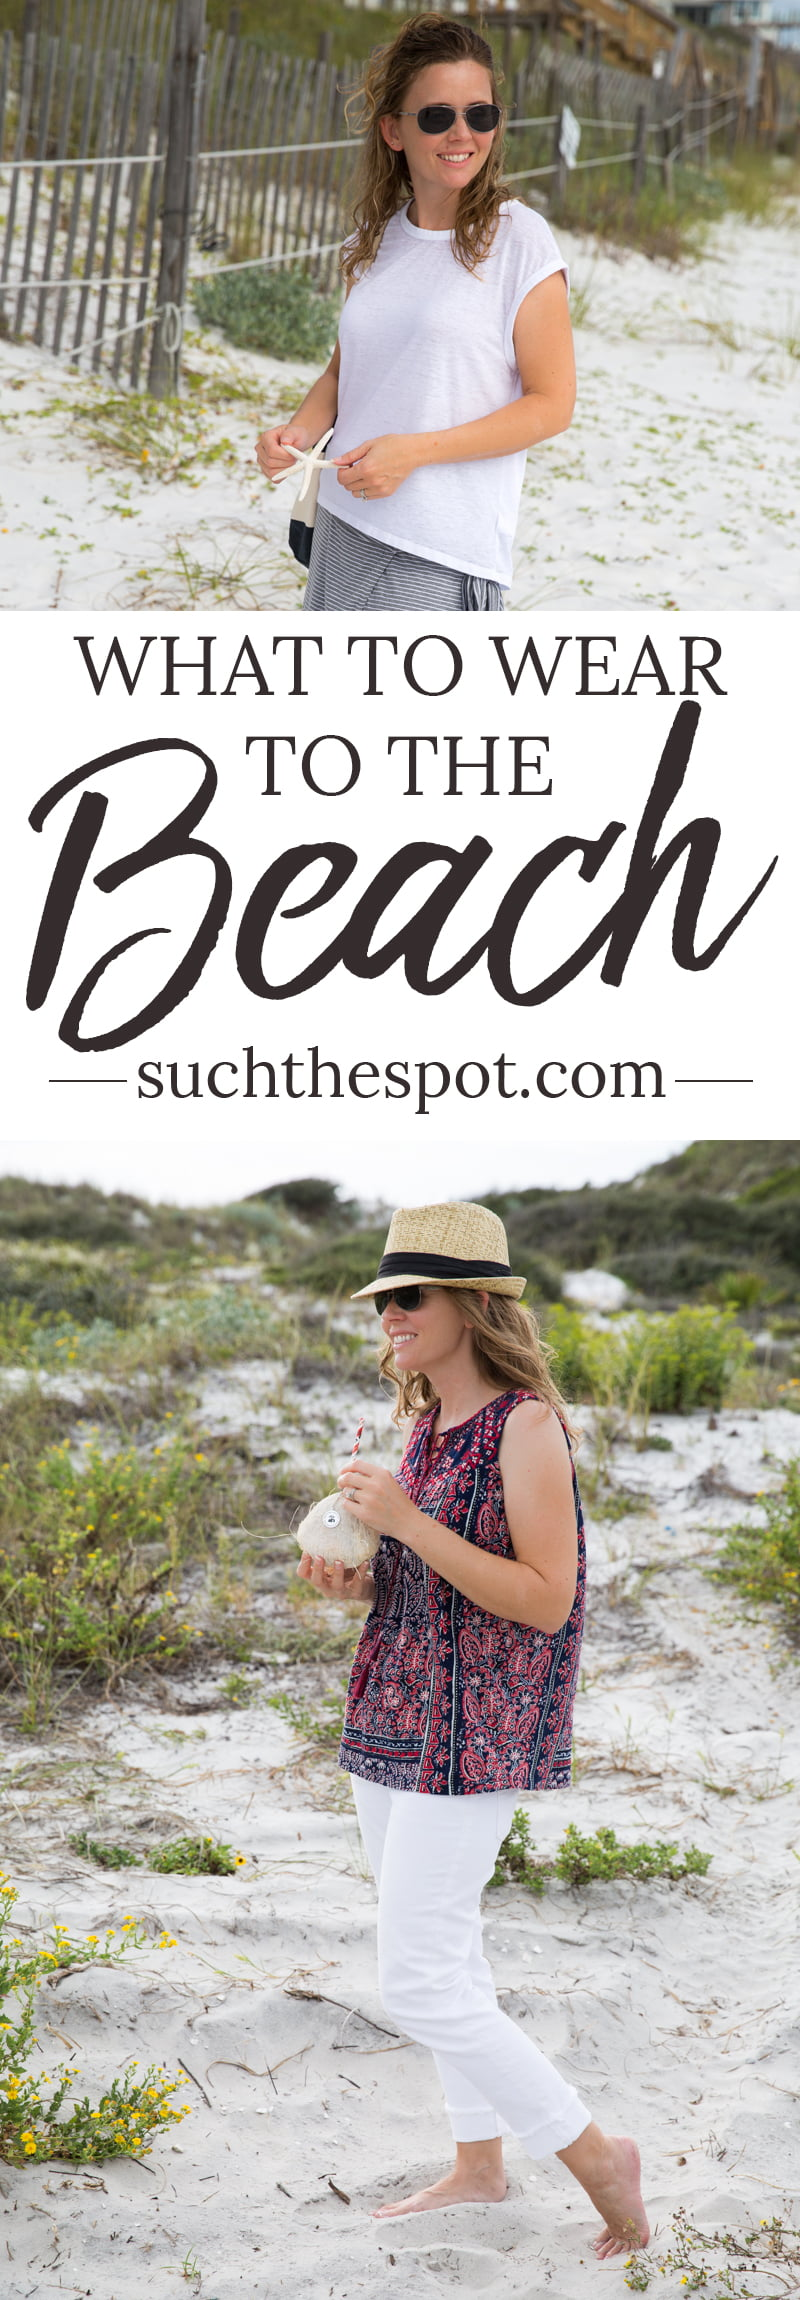 Simple Beach Trip Outfit Ideas For Women